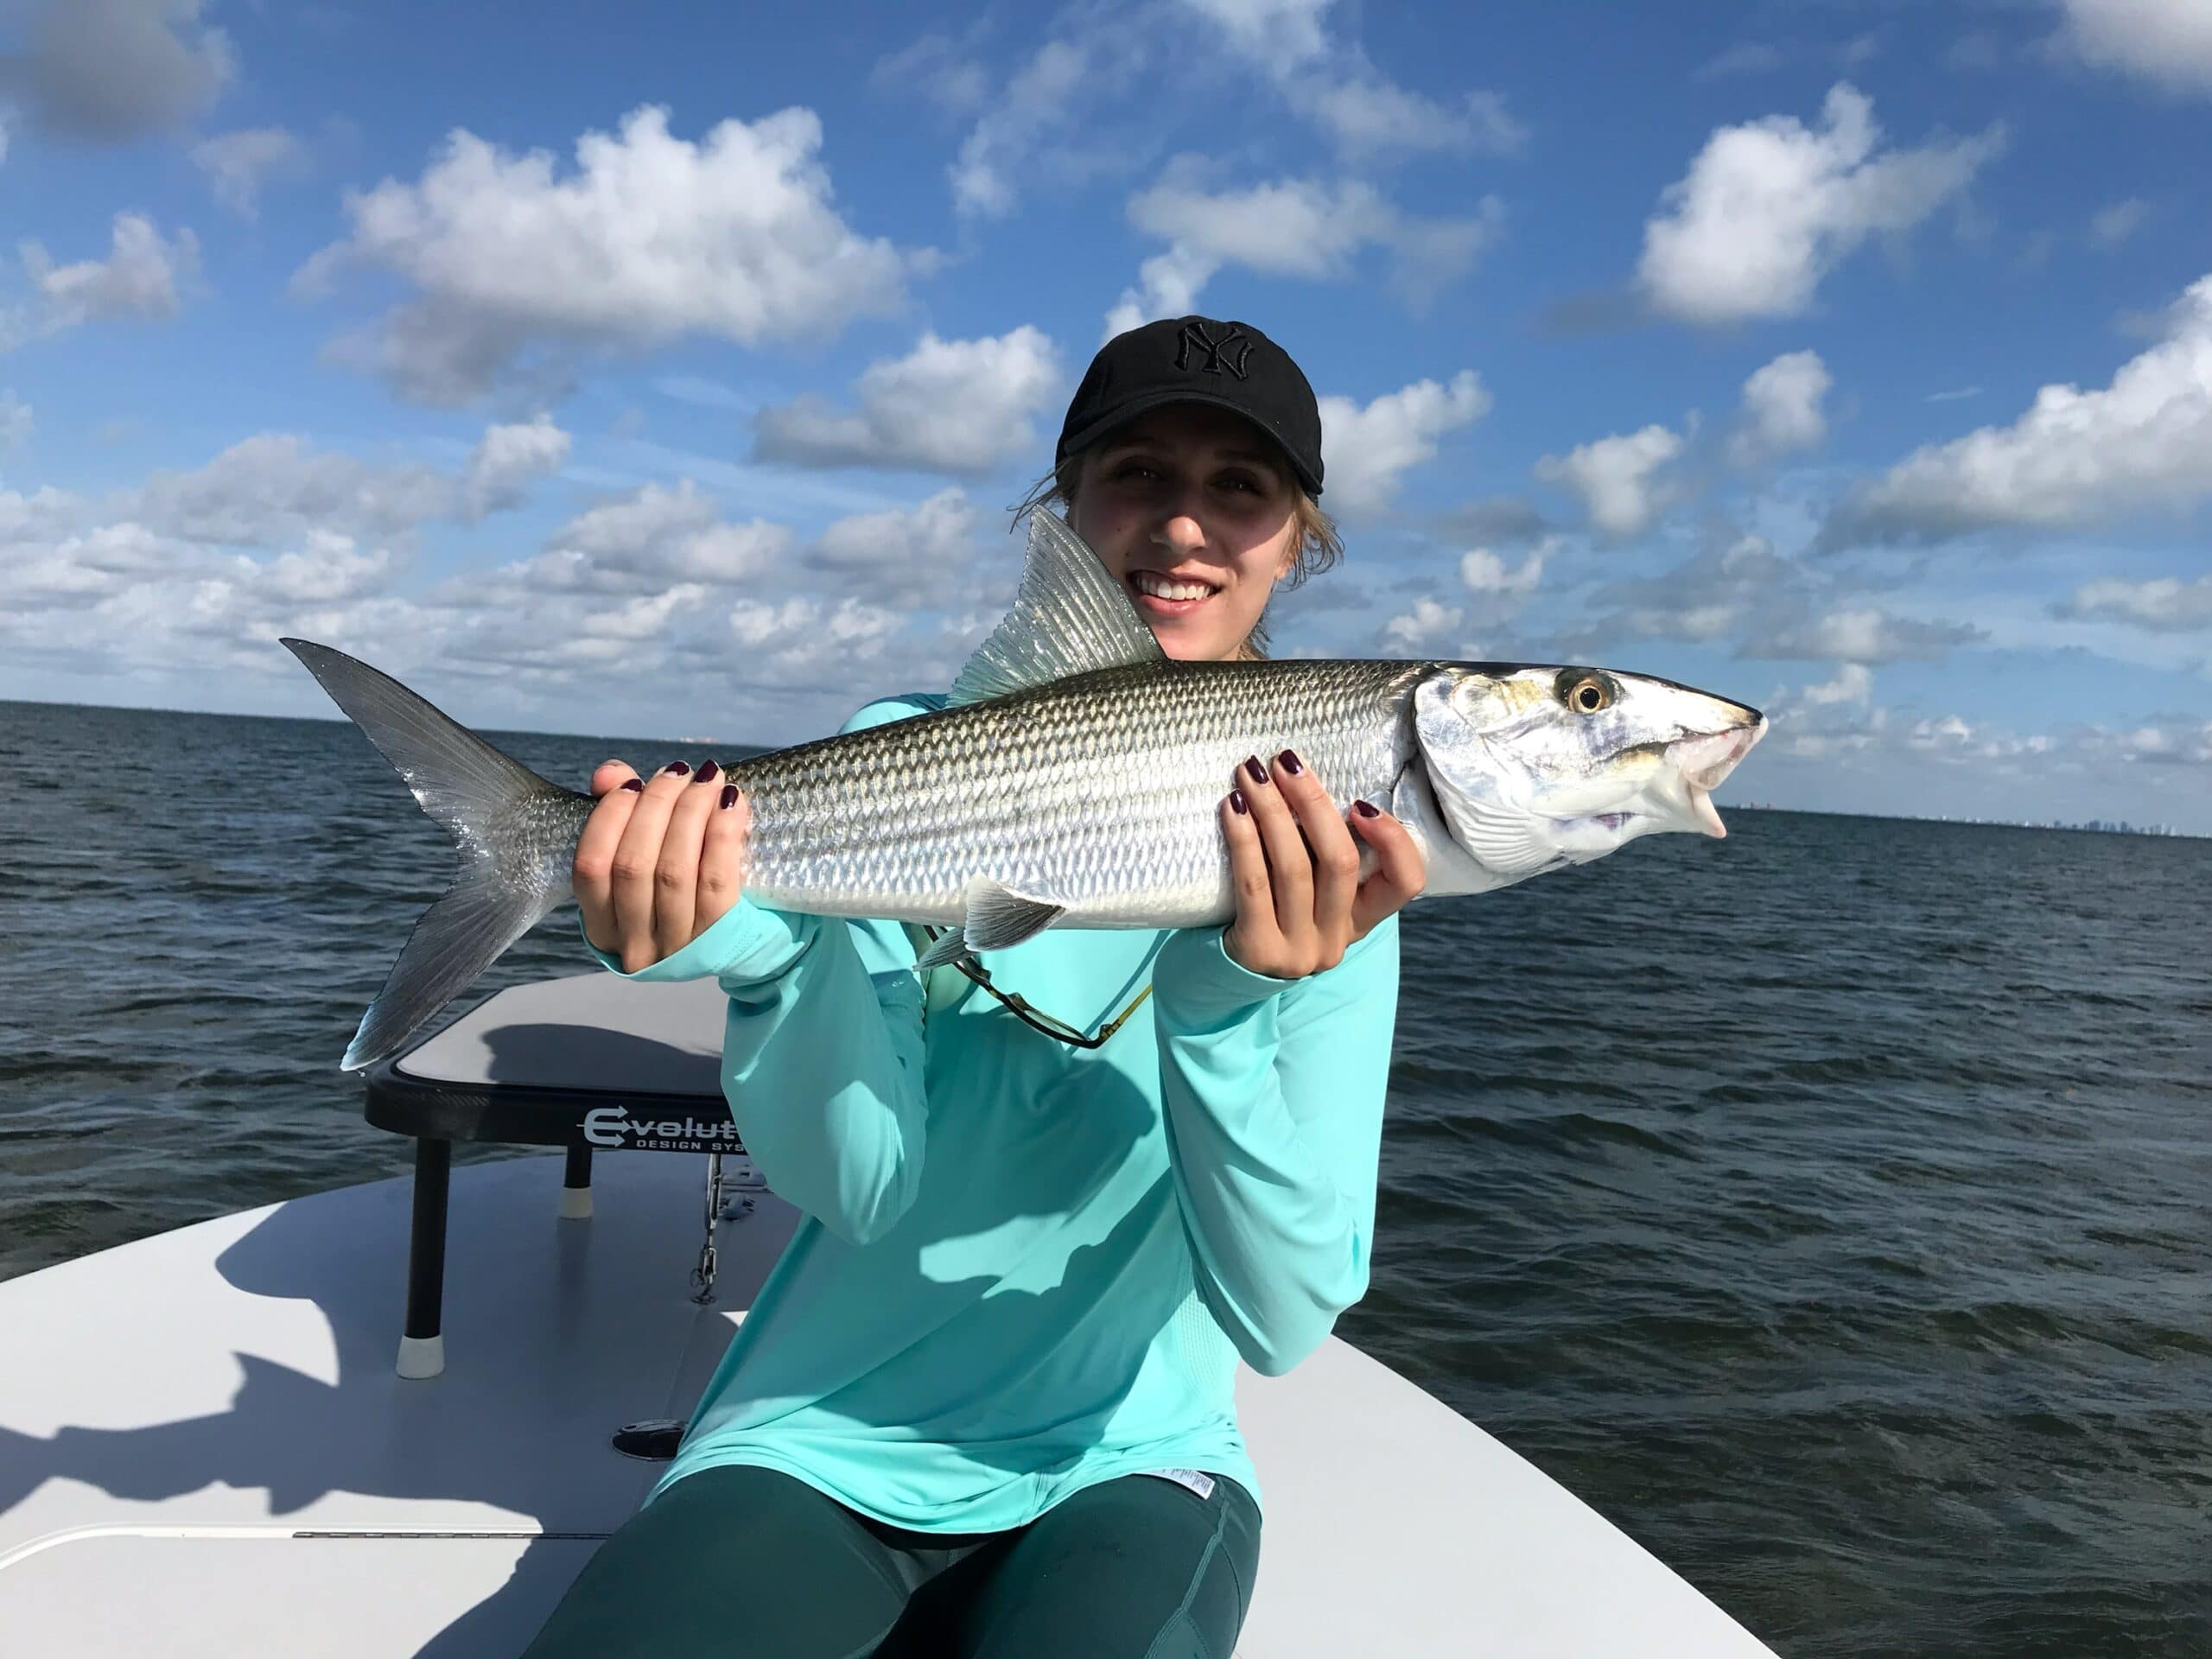 Miami Summer Flats Fishing Report: bone fish, tarpon, permit fishing at its finest